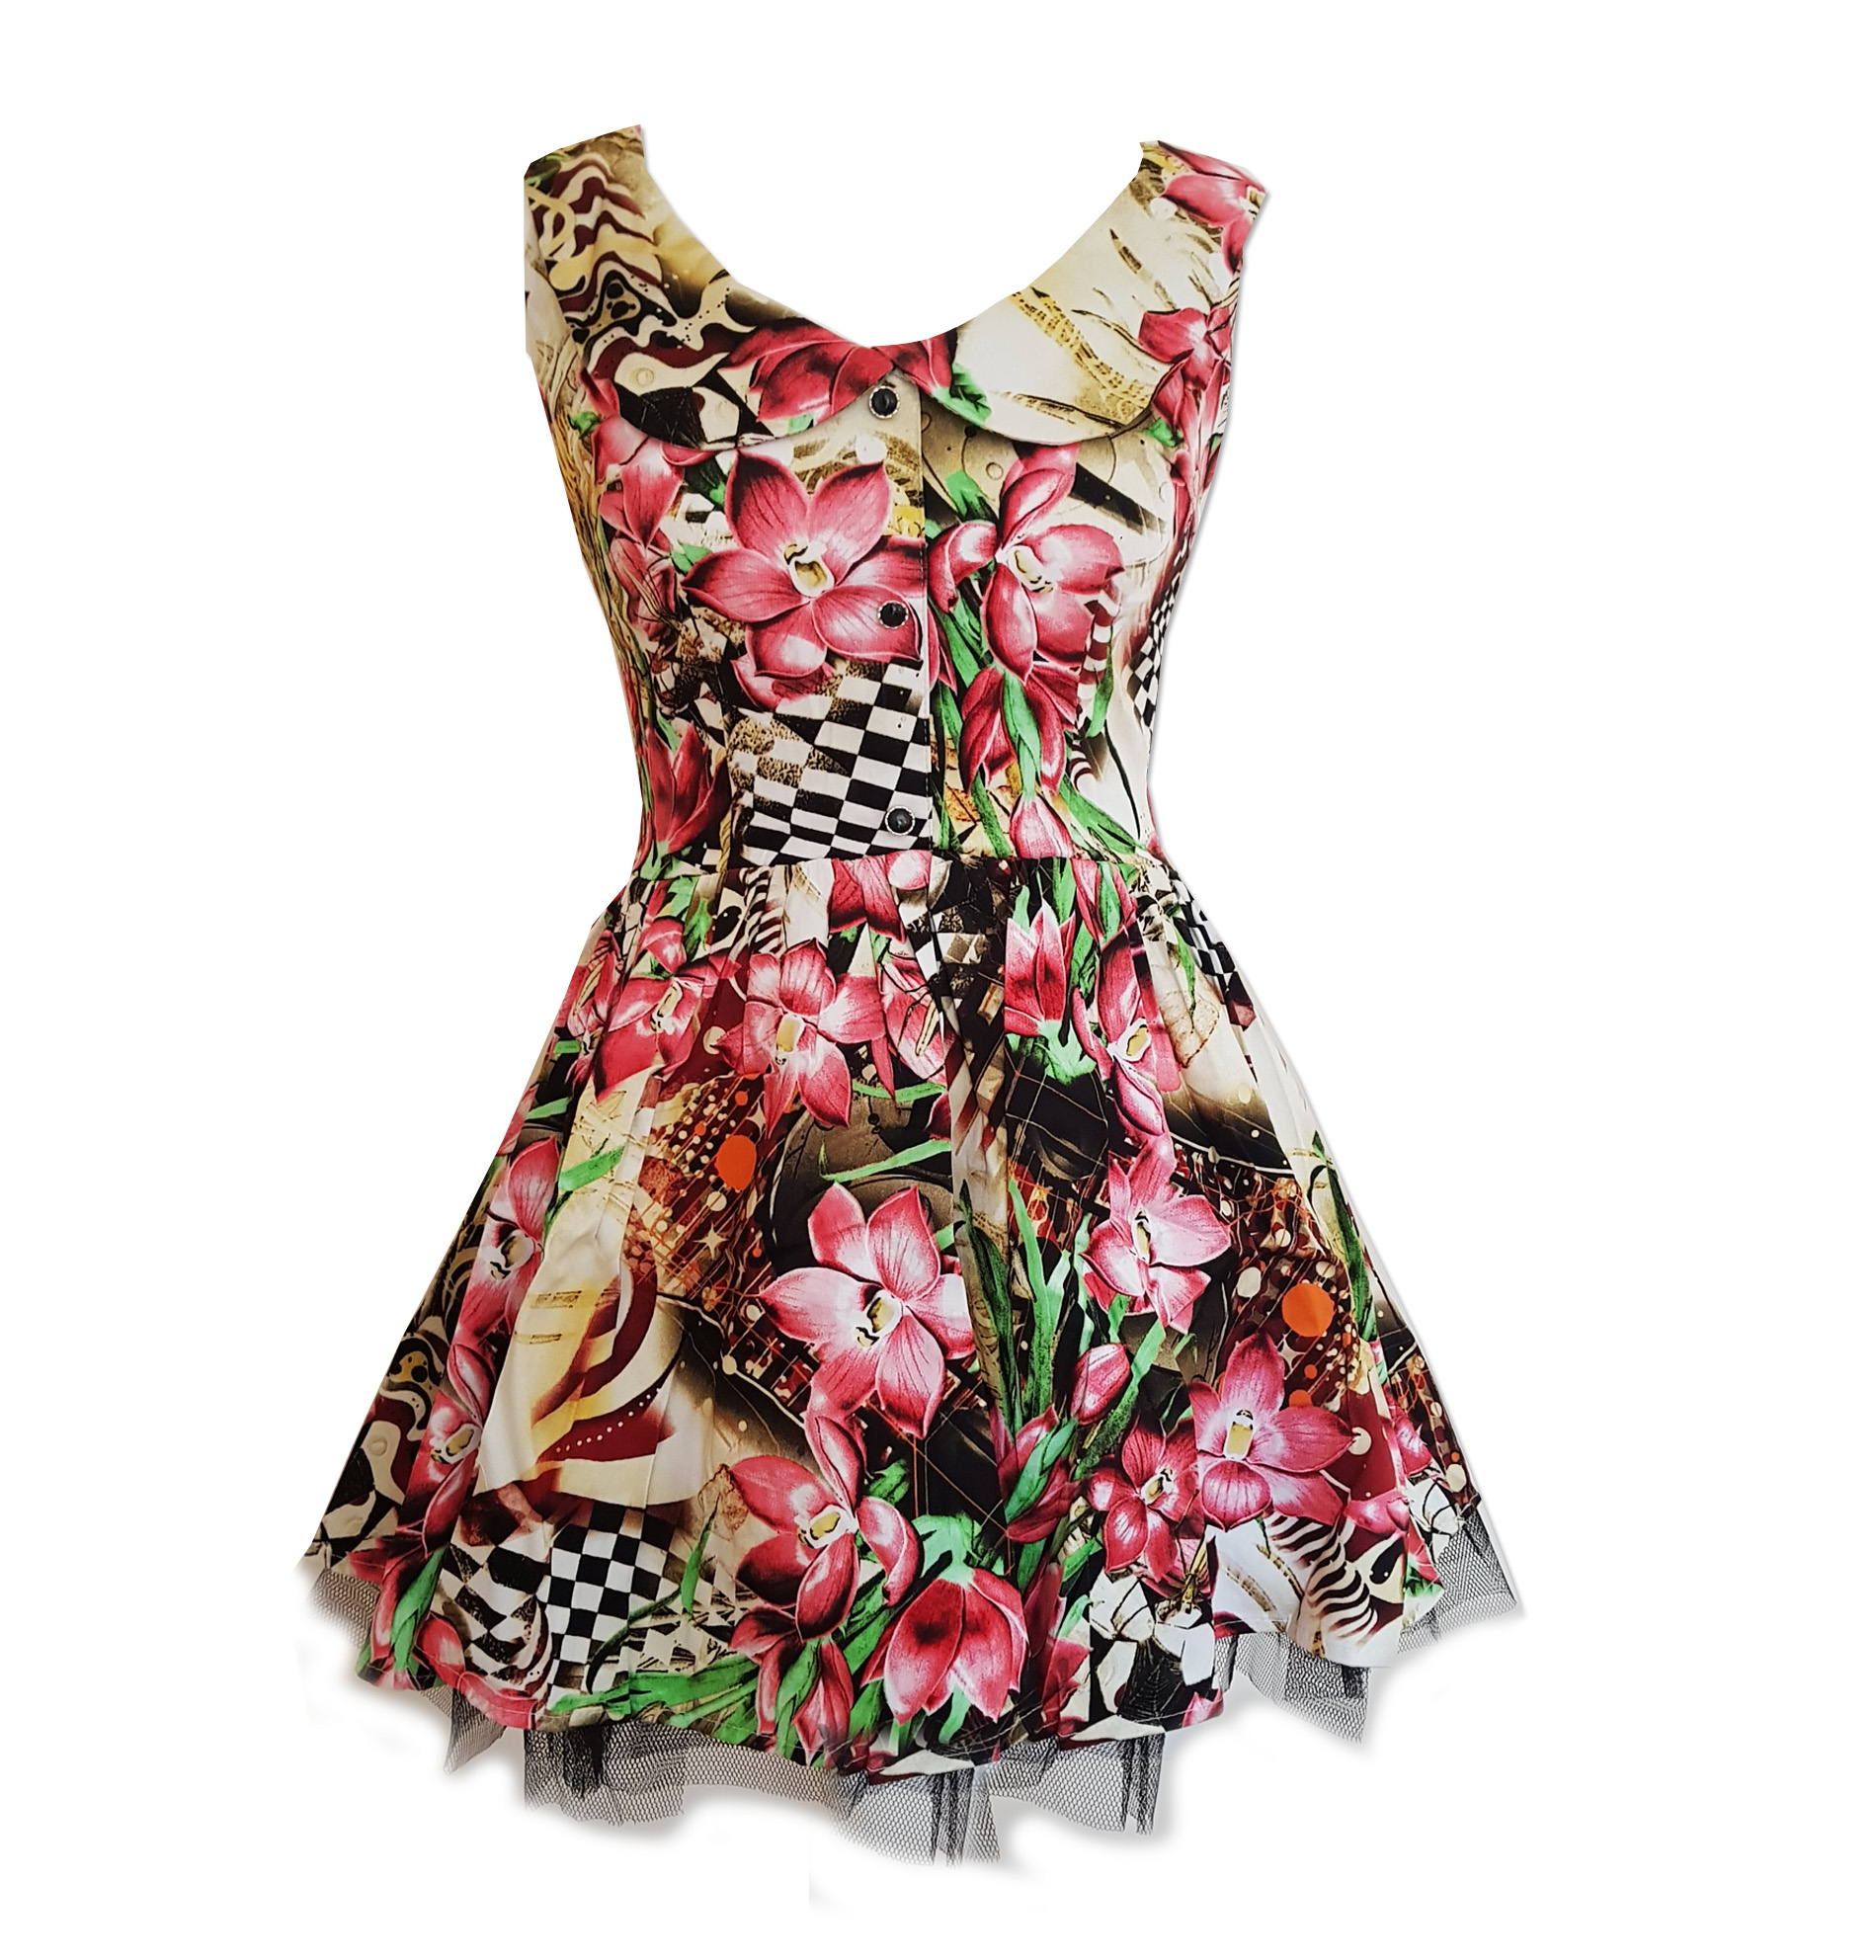 H-amp-R-Hearts-amp-Roses-London-Pink-Mini-Dress-039-Lily-Checkerboard-039-Flowers-All-Sizes thumbnail 3